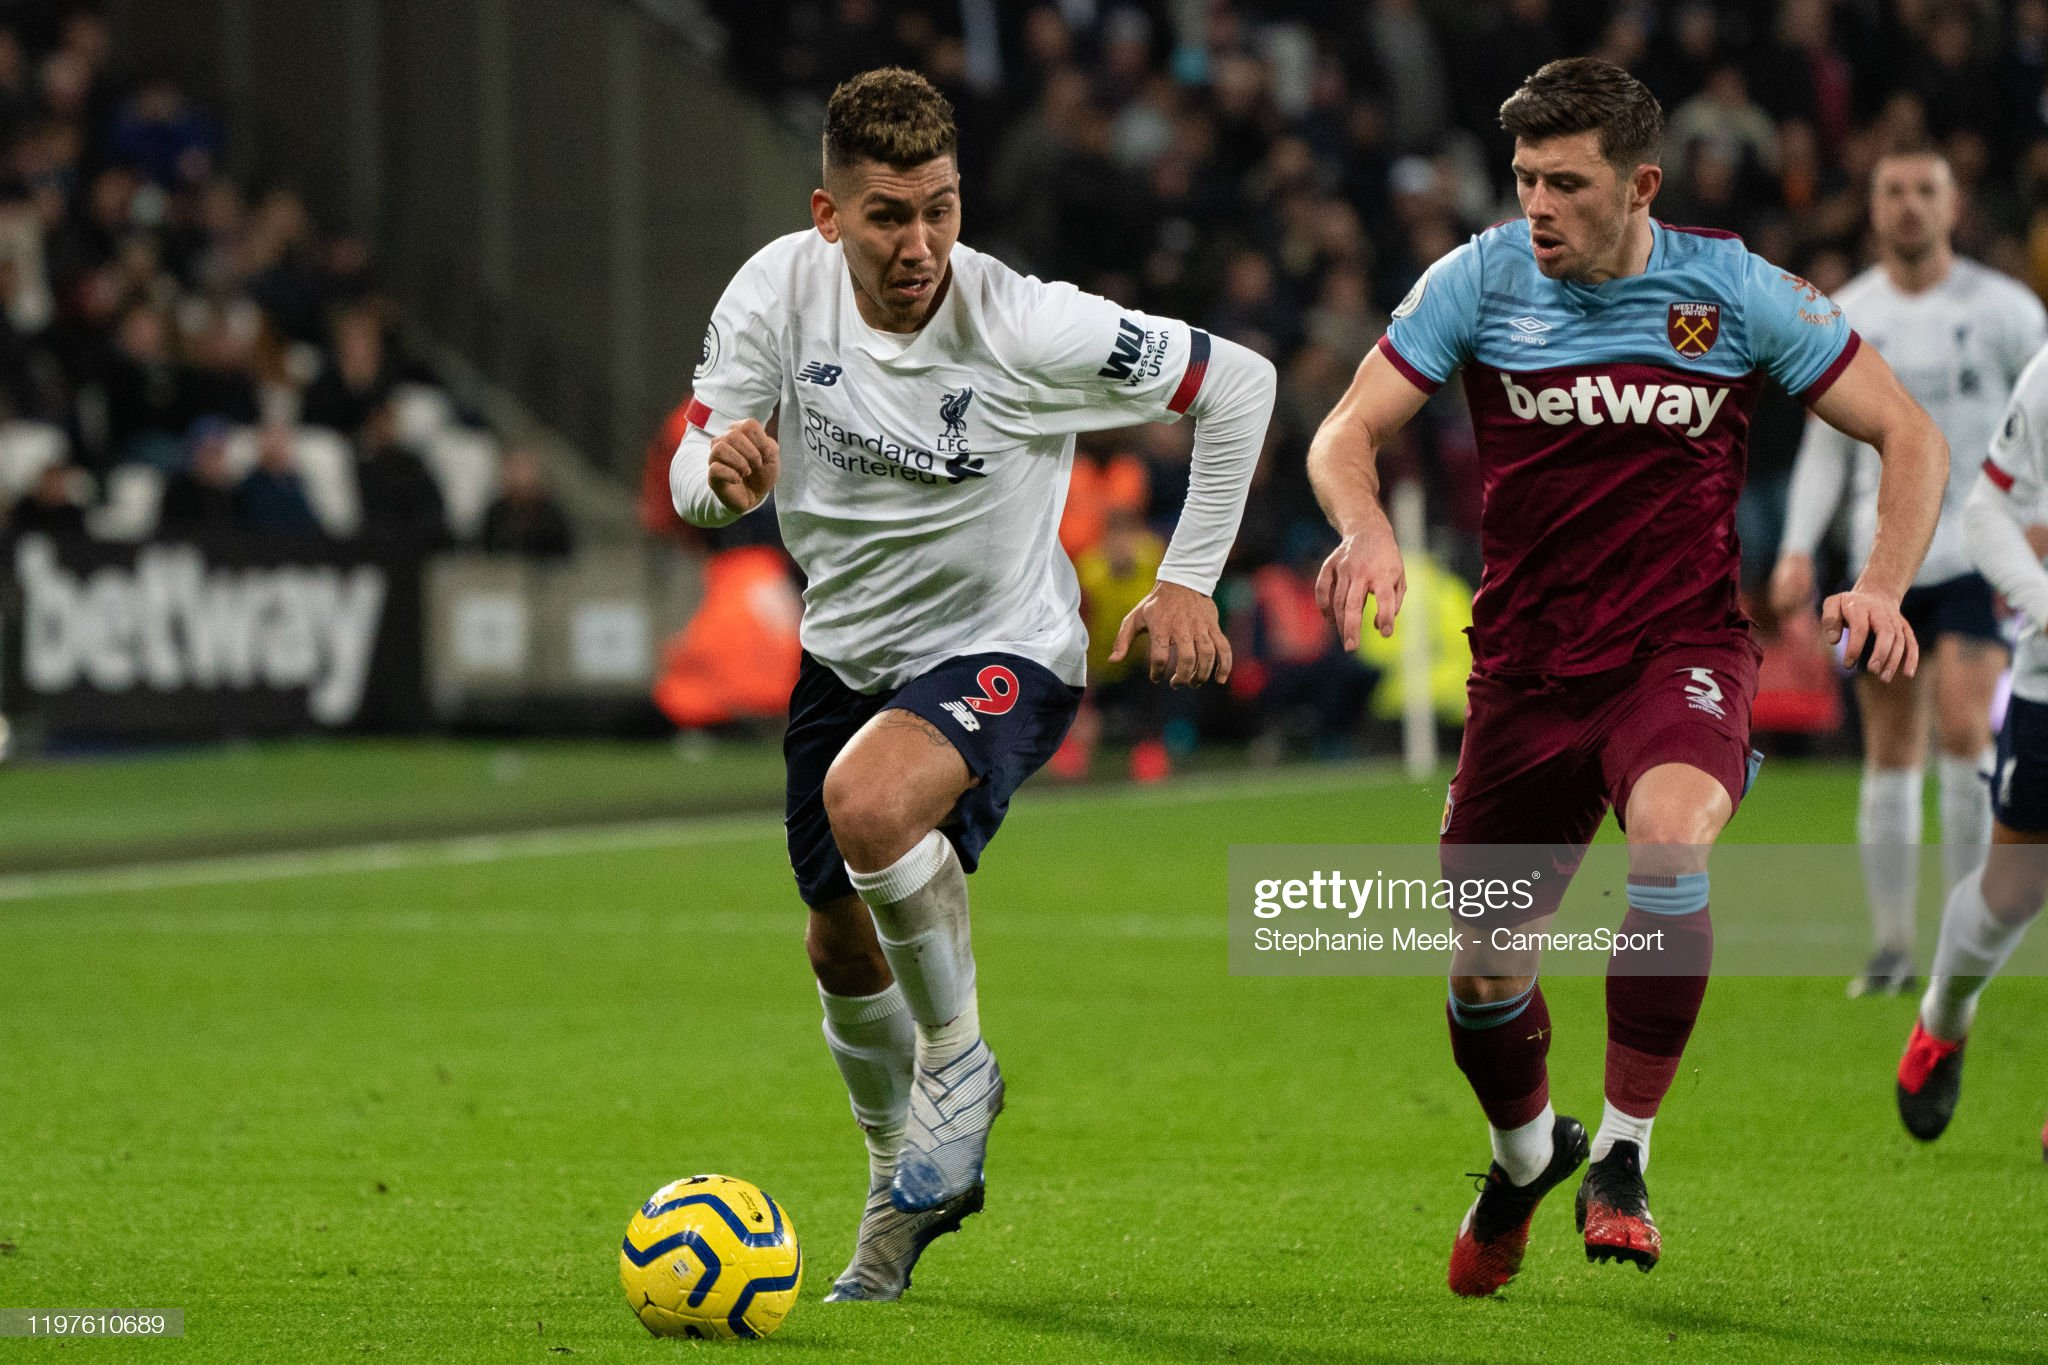 Liverpool v West Ham preview, prediction and odds